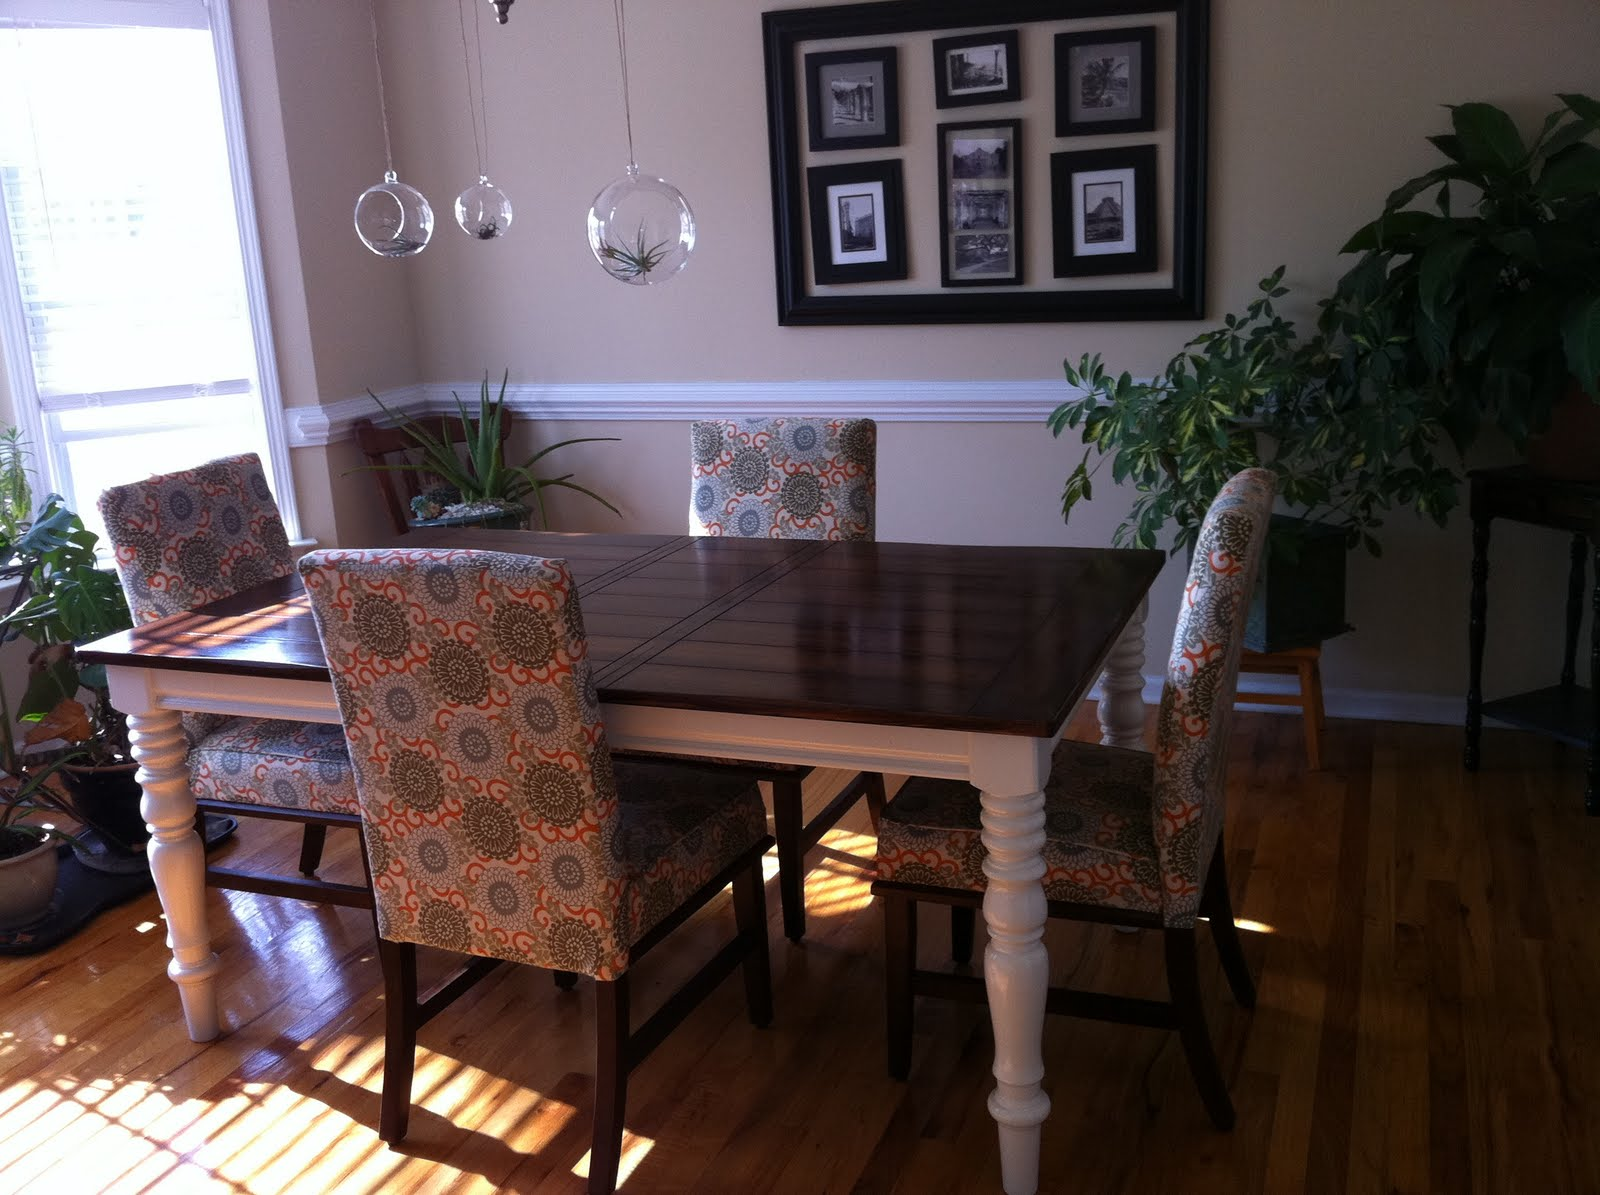 Refinish Dining Room Chairs Introduction Refinishing Old Dining